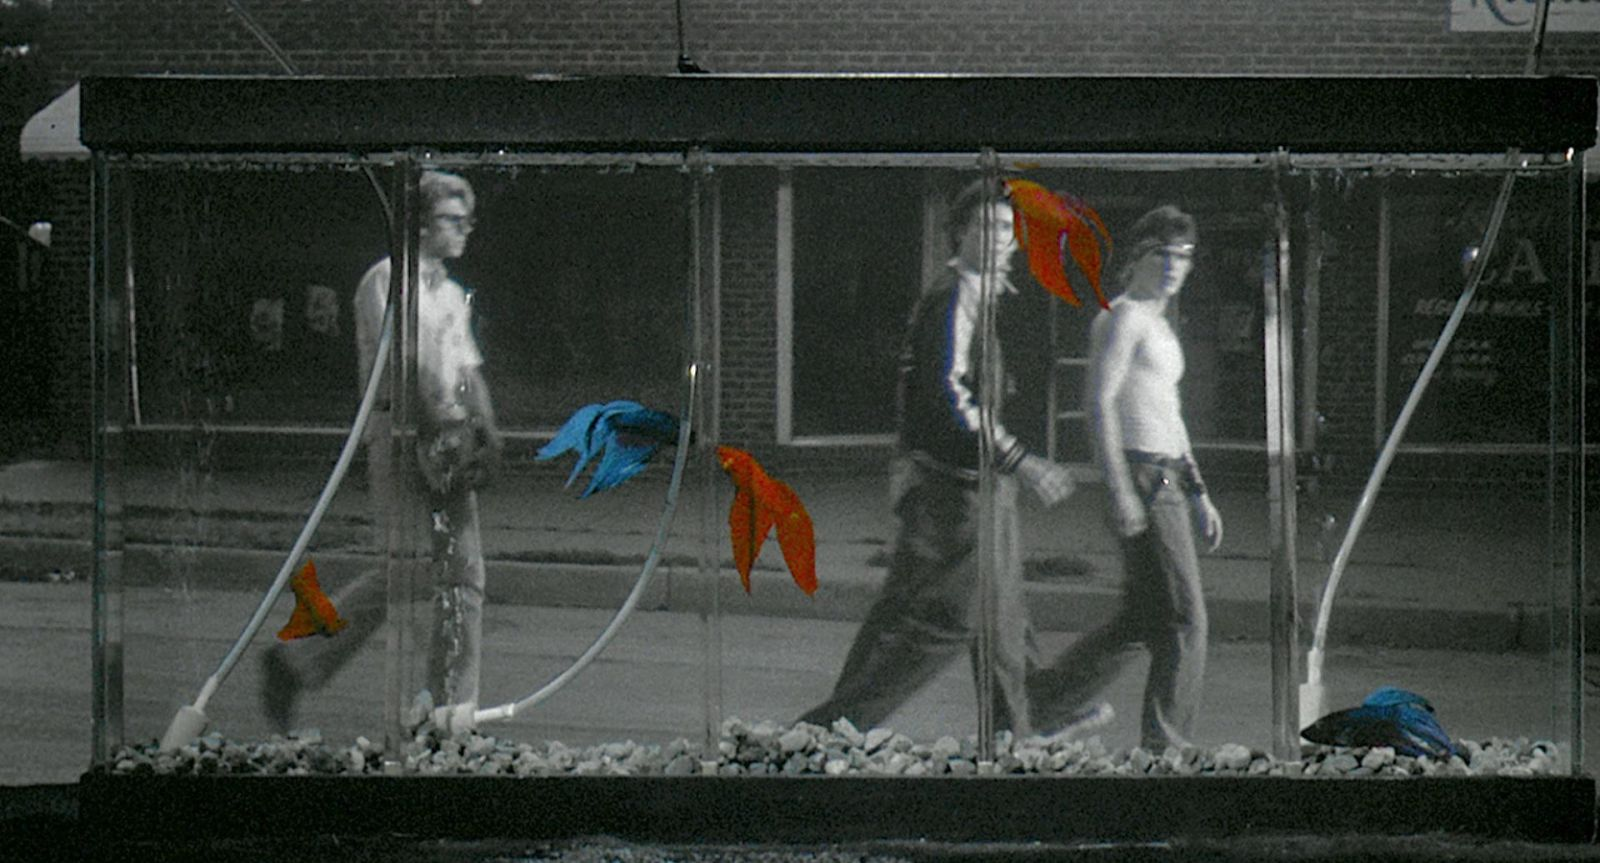 my personal favorite film rumble fish my ode to coppola s whenever i am asked what my favorite movie is i declare from the gut out hesitation 1983 s rumble fish by francis ford coppola starring matt